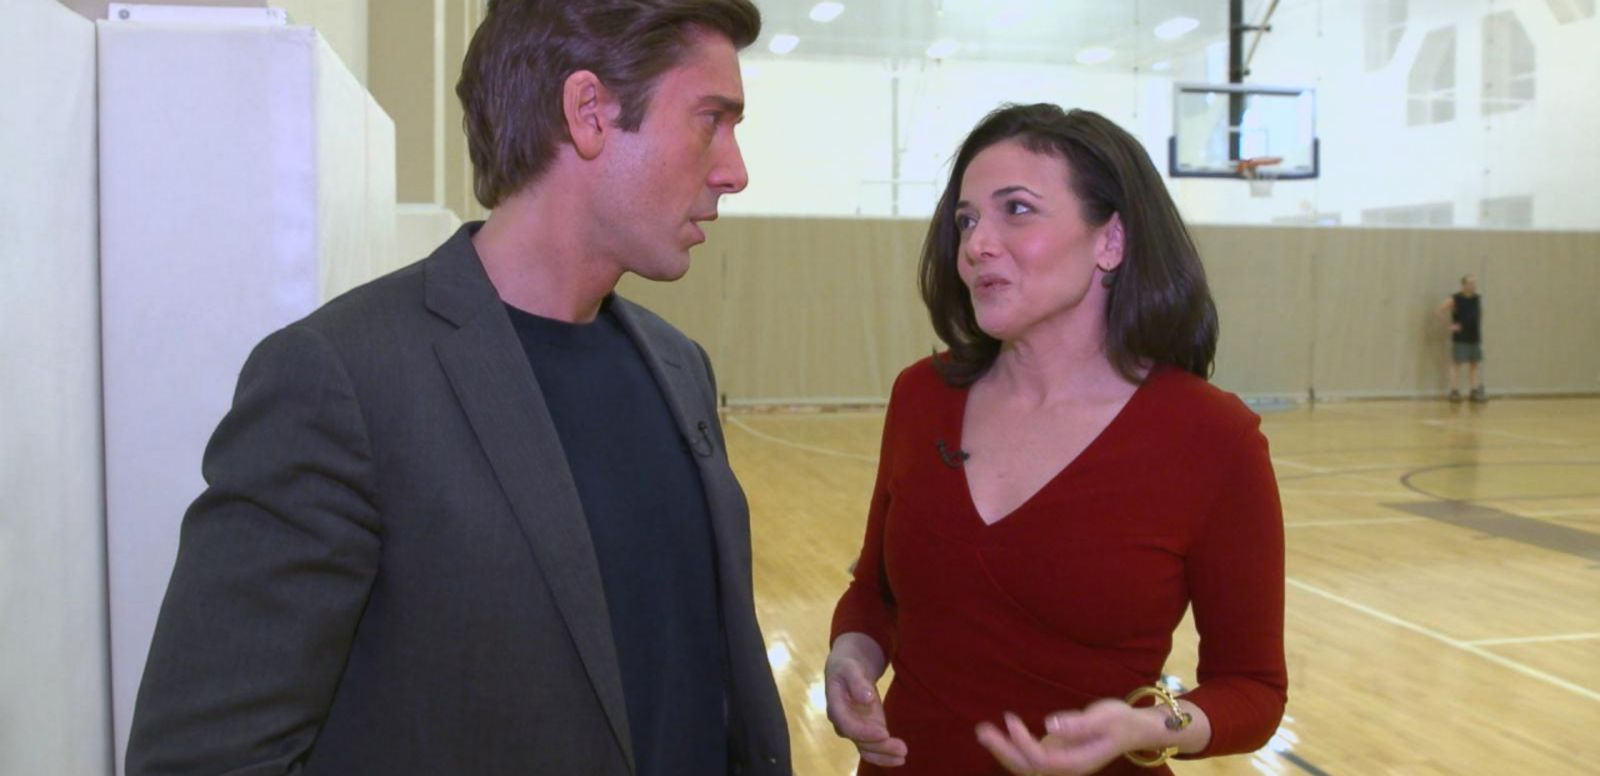 VIDEO: Sheryl Sandberg Discusses Her New Movement to Empower Women